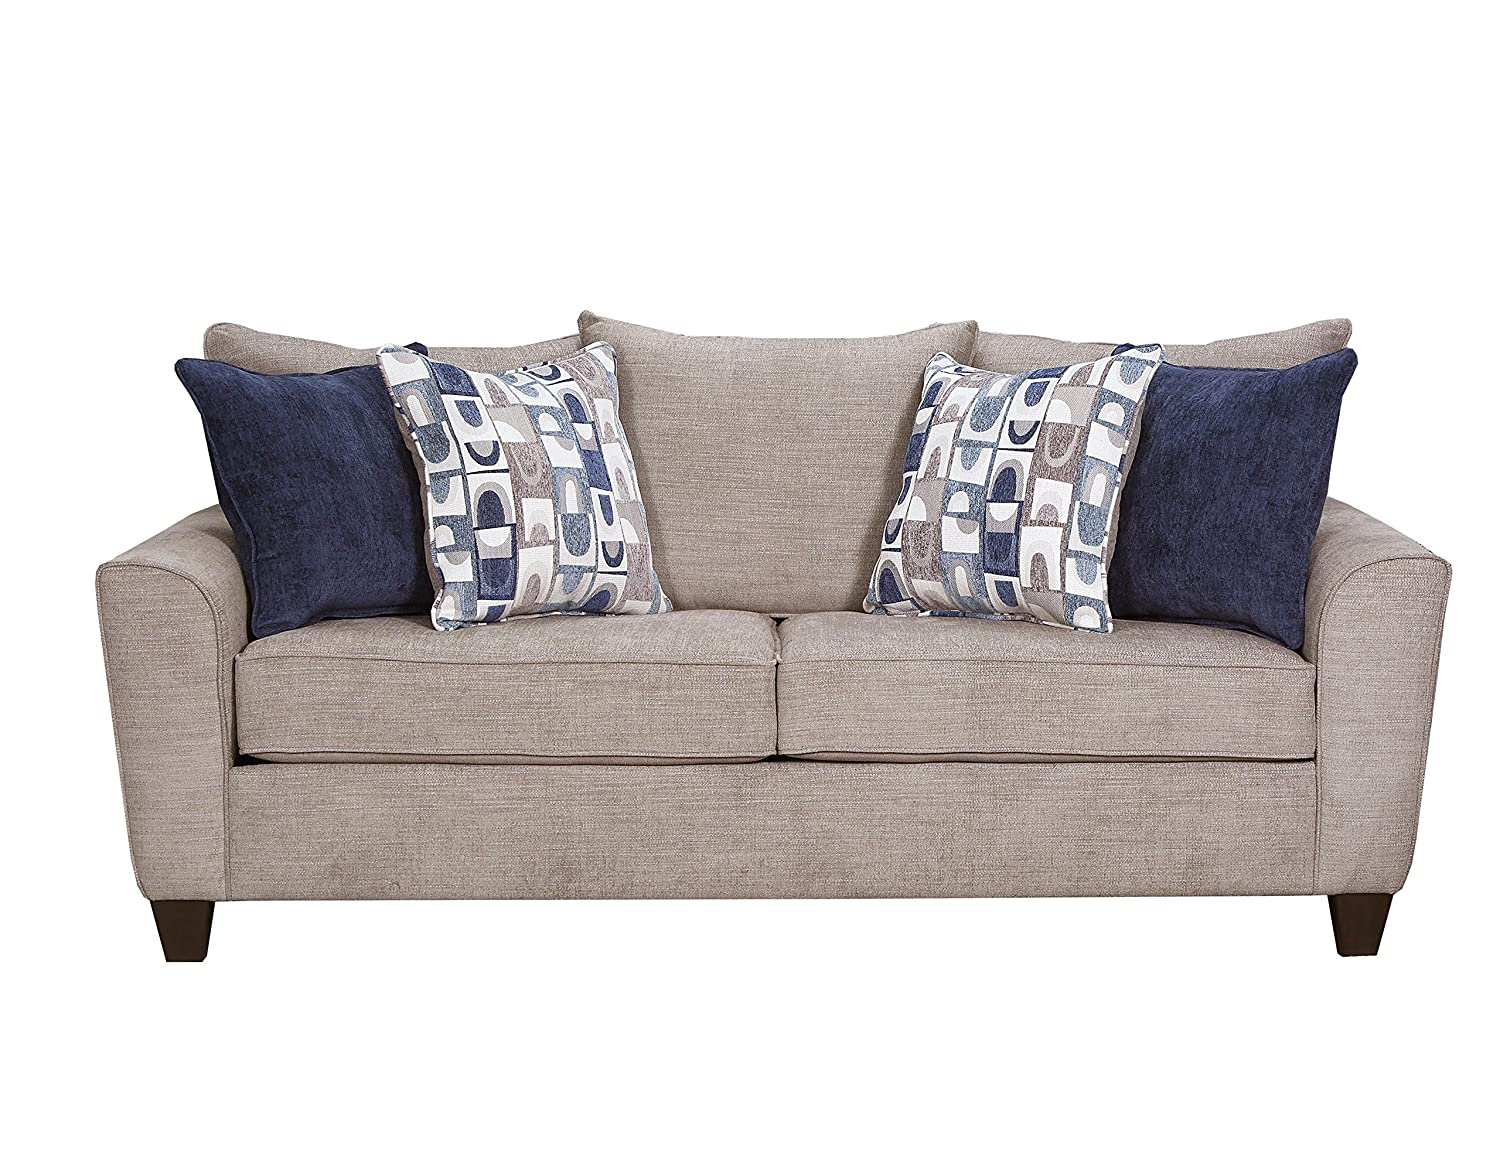 Peachy Simmons Upholstery 9096 03 Alamo Grey Sofa Caraccident5 Cool Chair Designs And Ideas Caraccident5Info